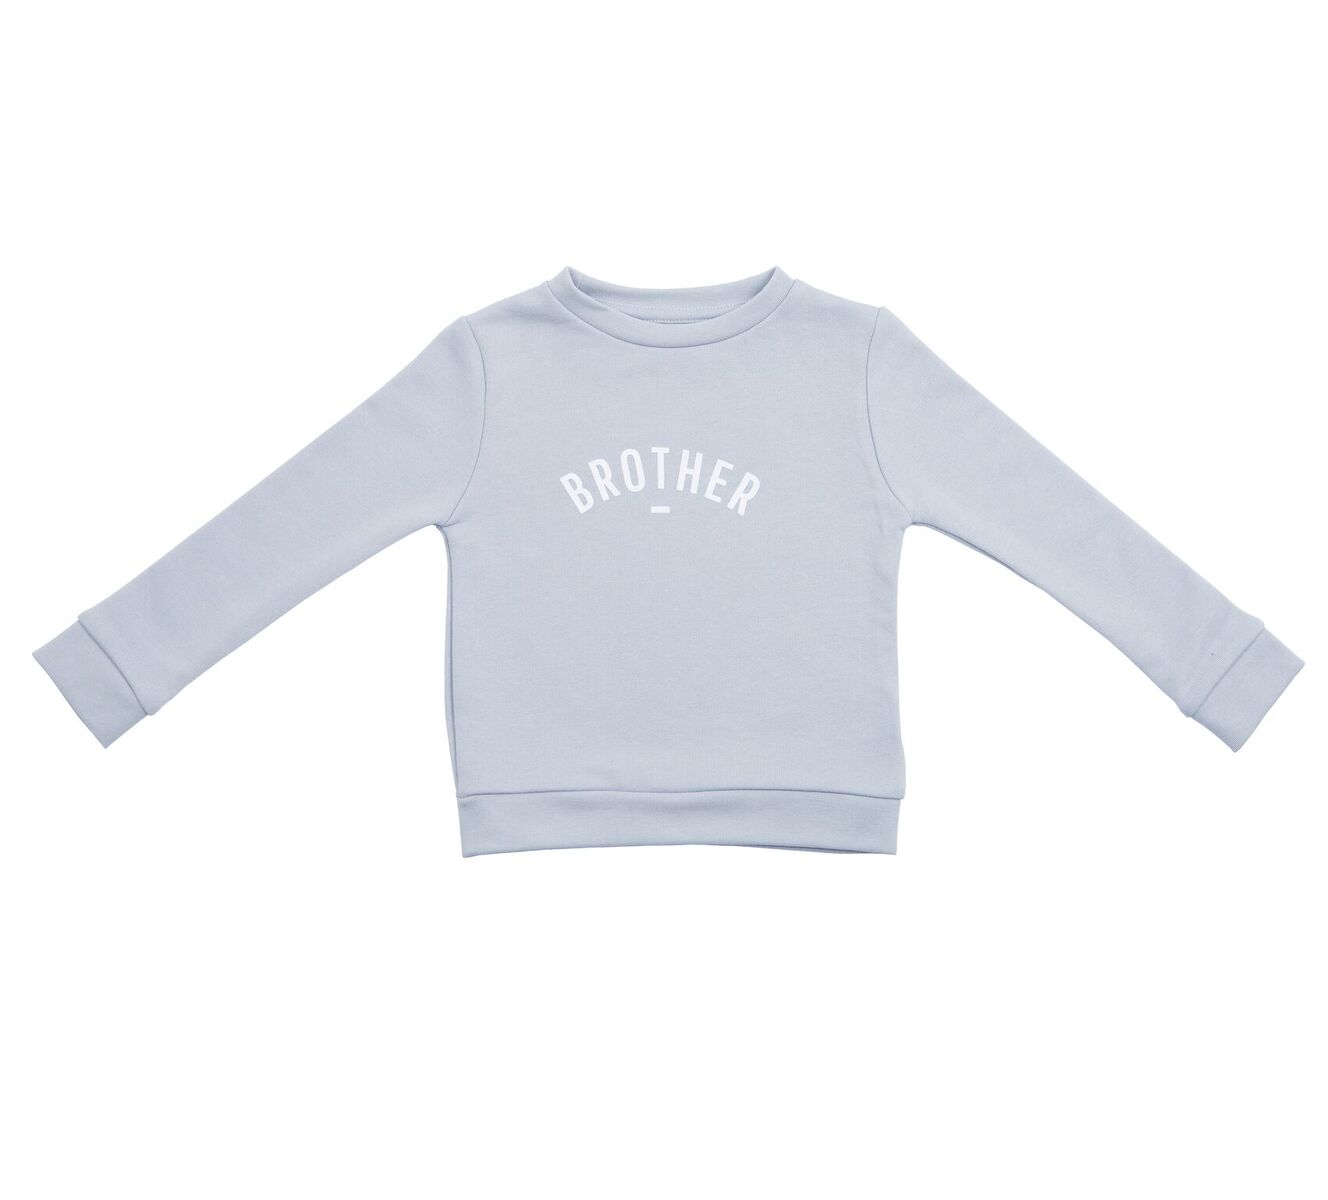 'Brother' Sweatshirt - Mouse Grey